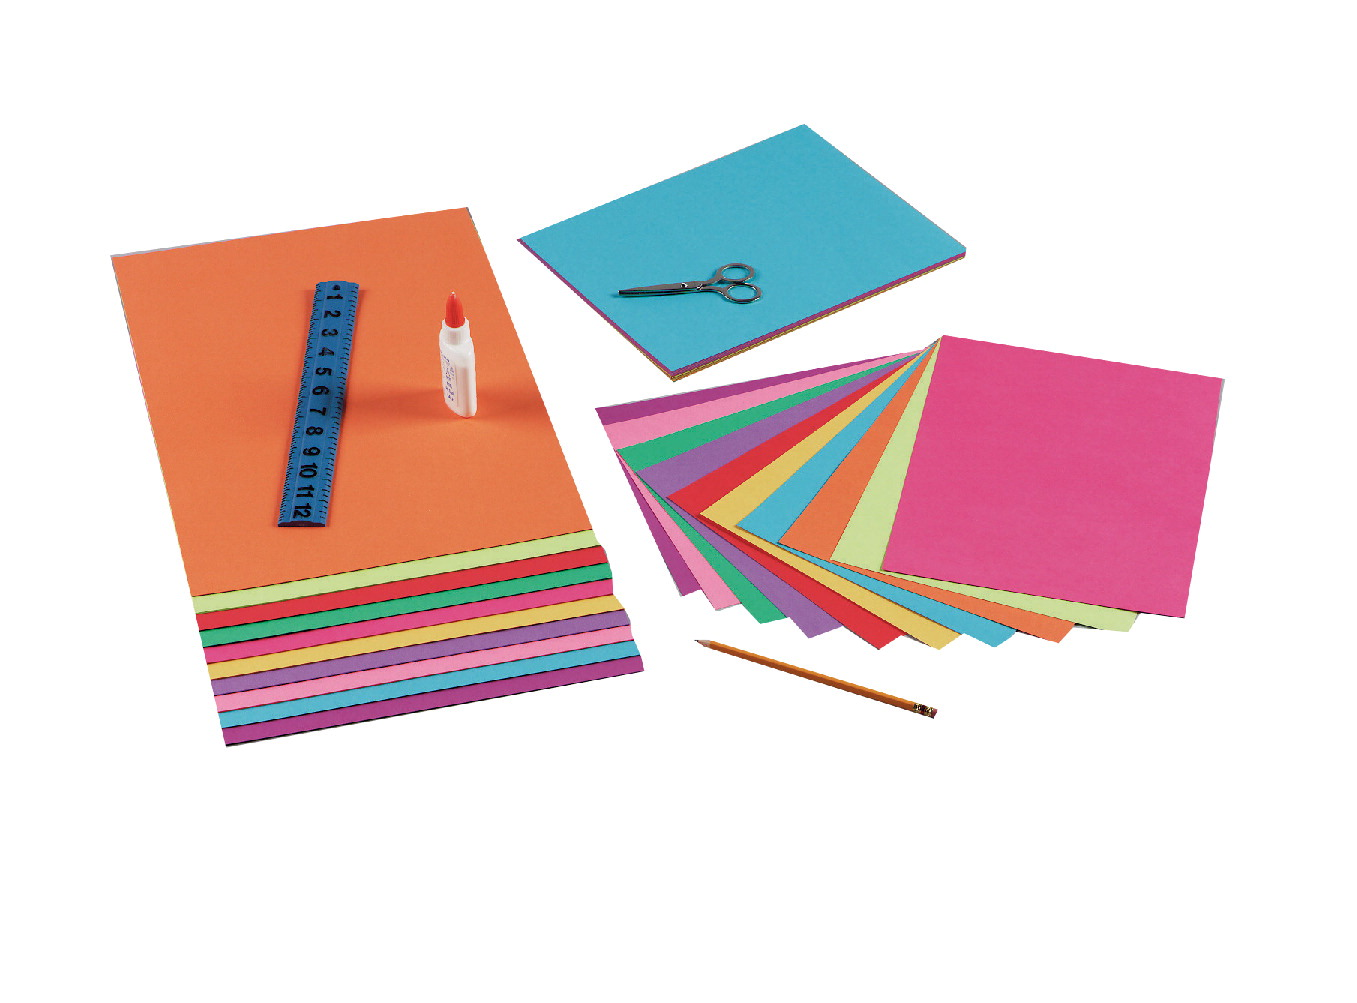 Tru-Ray Sulphite Construction Paper, 9 x 12 Inches, Assorted Bright Color, 50 Sheets